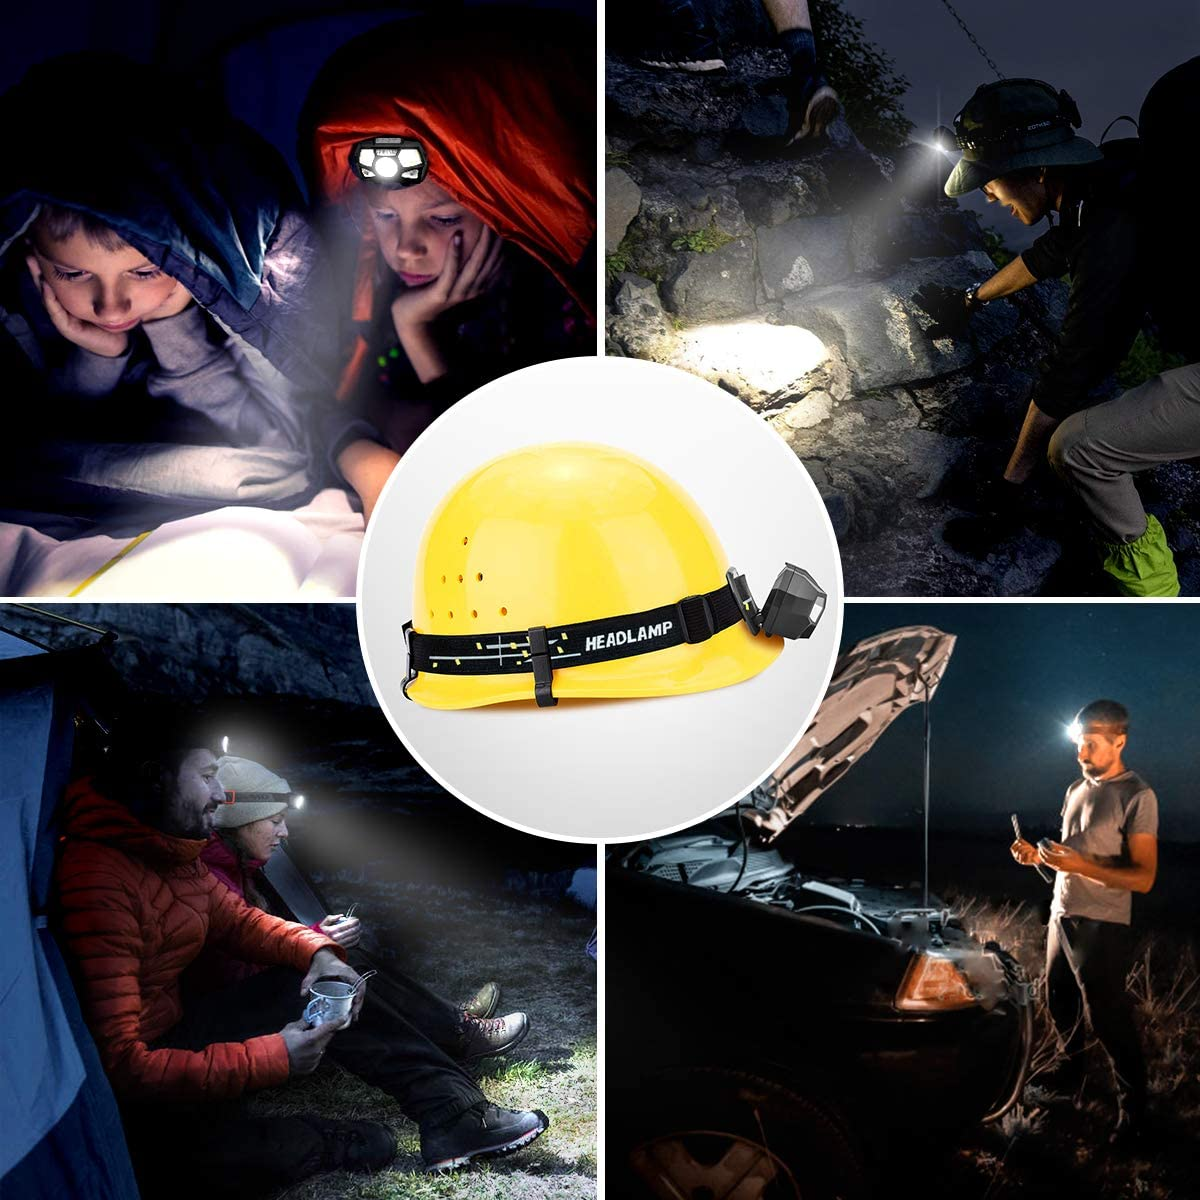 Induction Headlight Body Motion Sensor Headlamp USB Rechargeable Head Front Light Waterproof Head Lamp with Built-in Battery enlarge